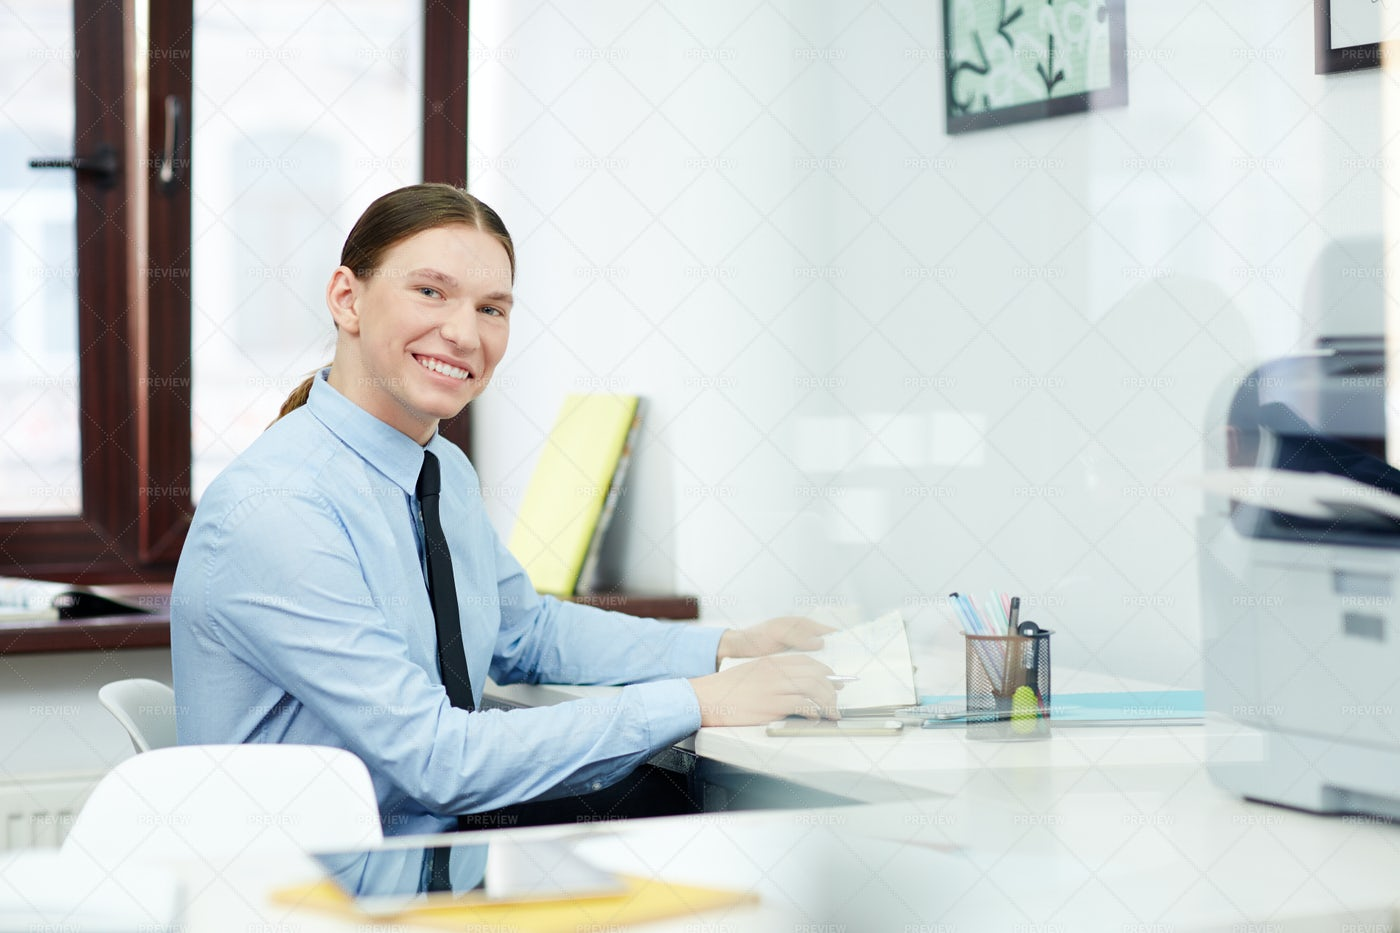 Portrait Of Smiling White Collar Worker: Stock Photos